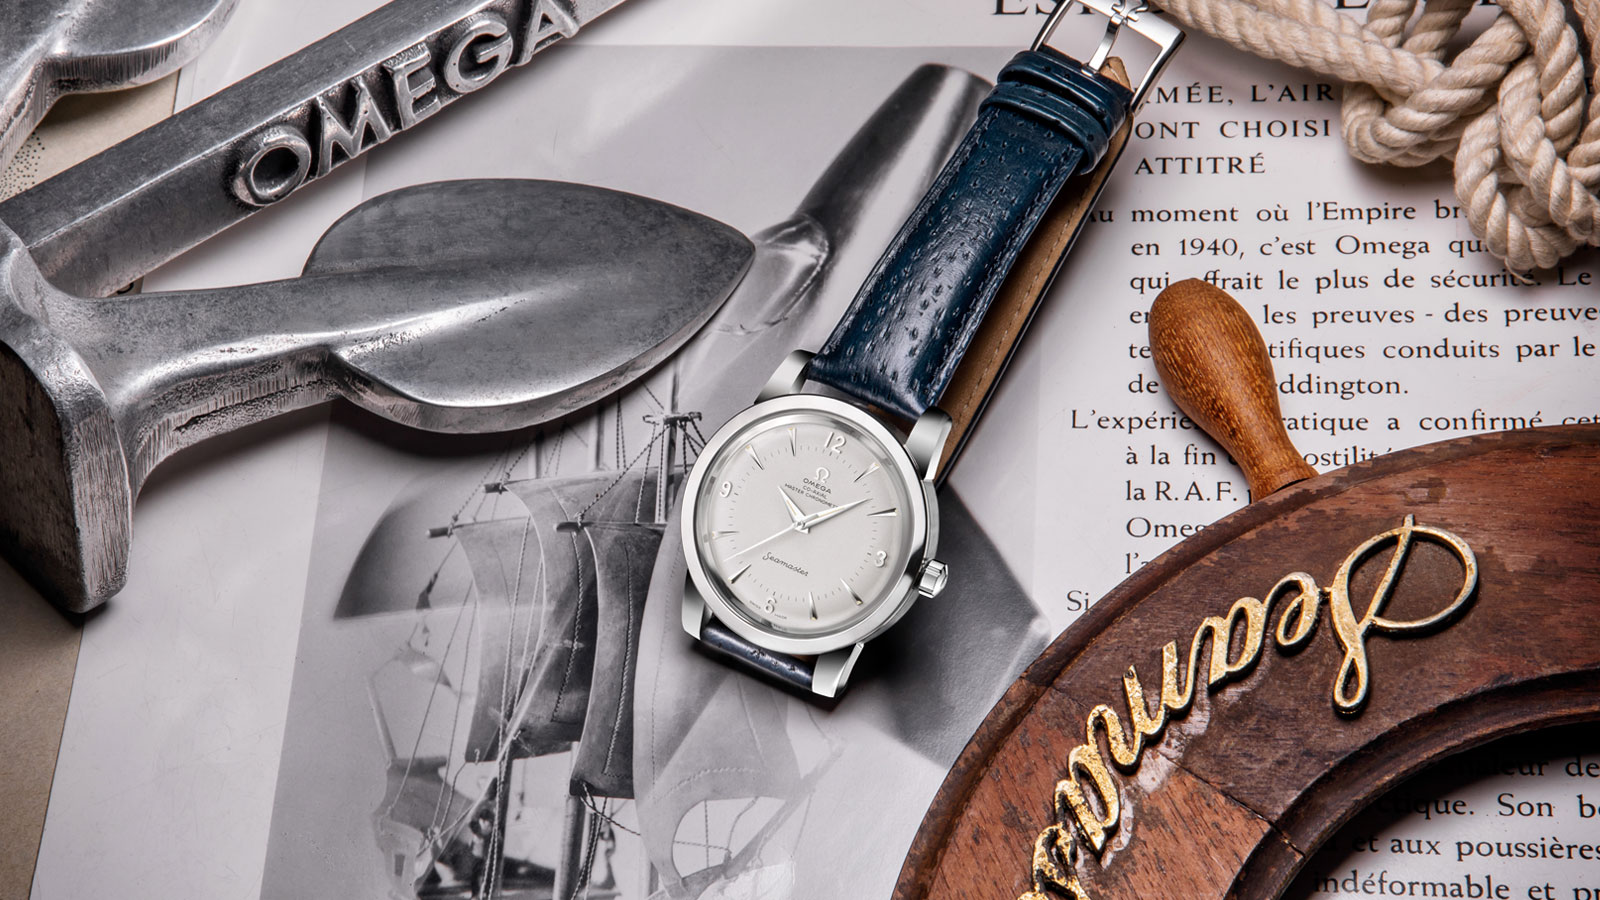 info for d2c76 45bee OMEGA s peaceful use of wartime technology produced the ultimate civilian  timepiece…